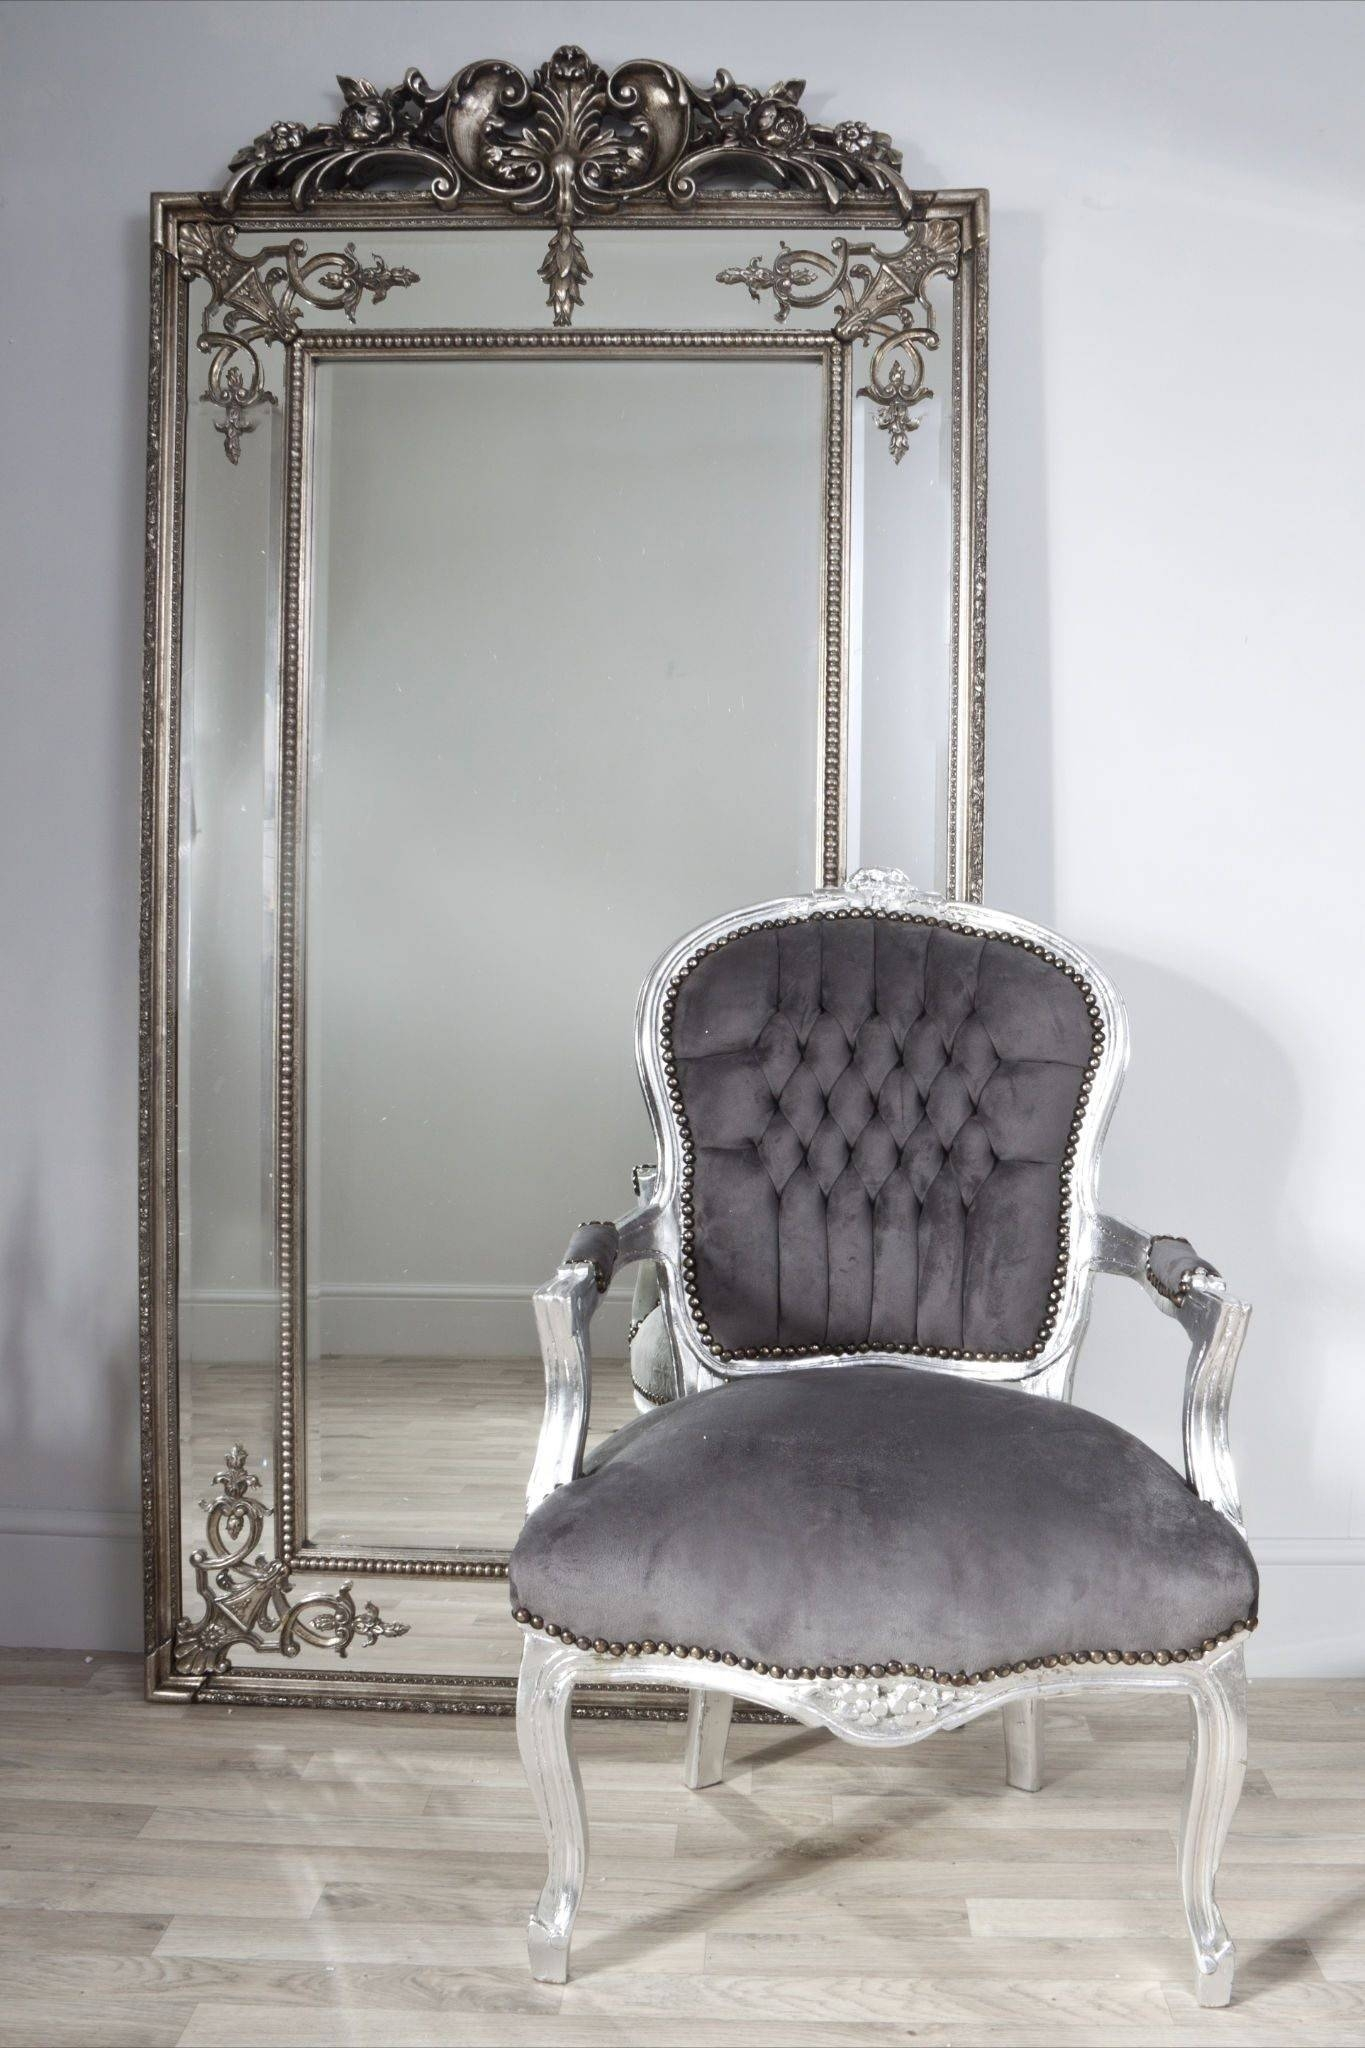 Interior & Decoration: Chrome Arm Chairs And Floor Mirror throughout Large Ornate White Mirrors (Image 13 of 25)